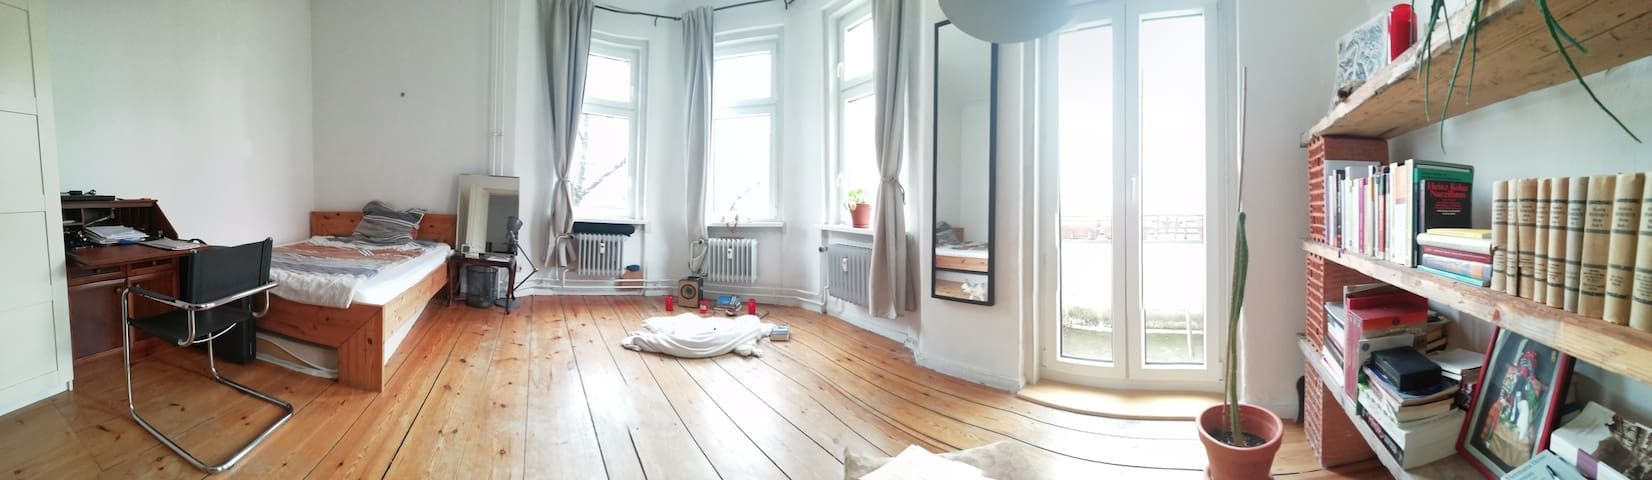 double room + living room + balcony (Neukölln)